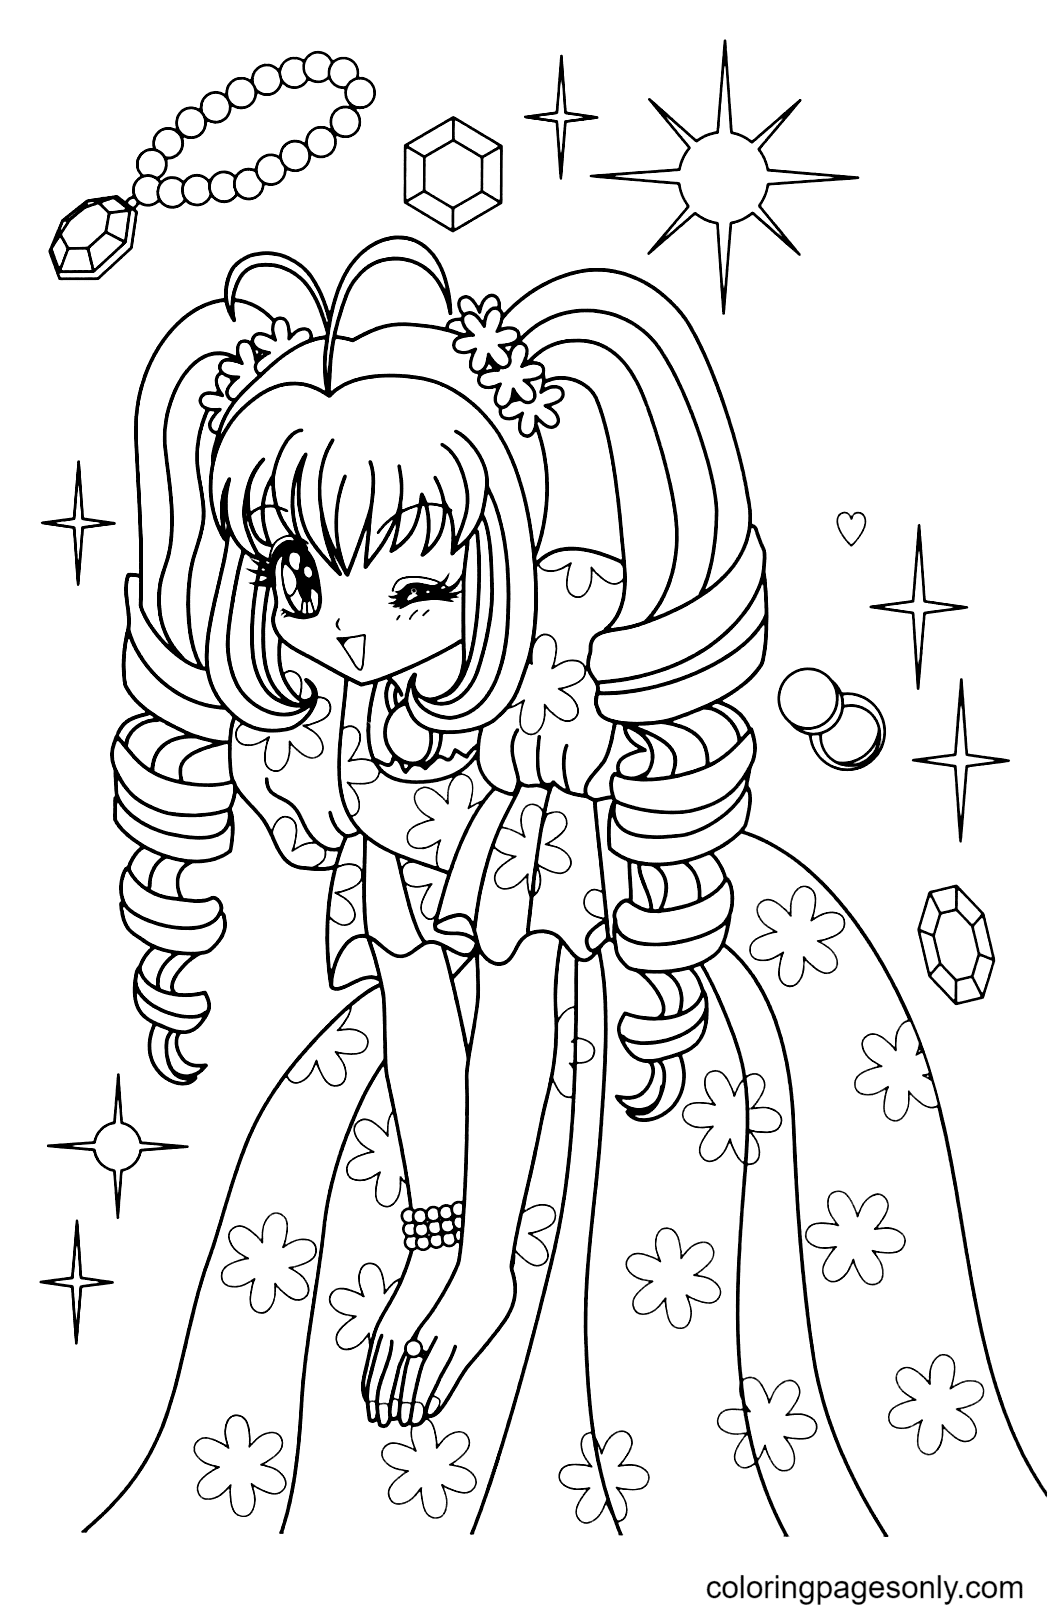 Anime Girl Cute Coloring Page